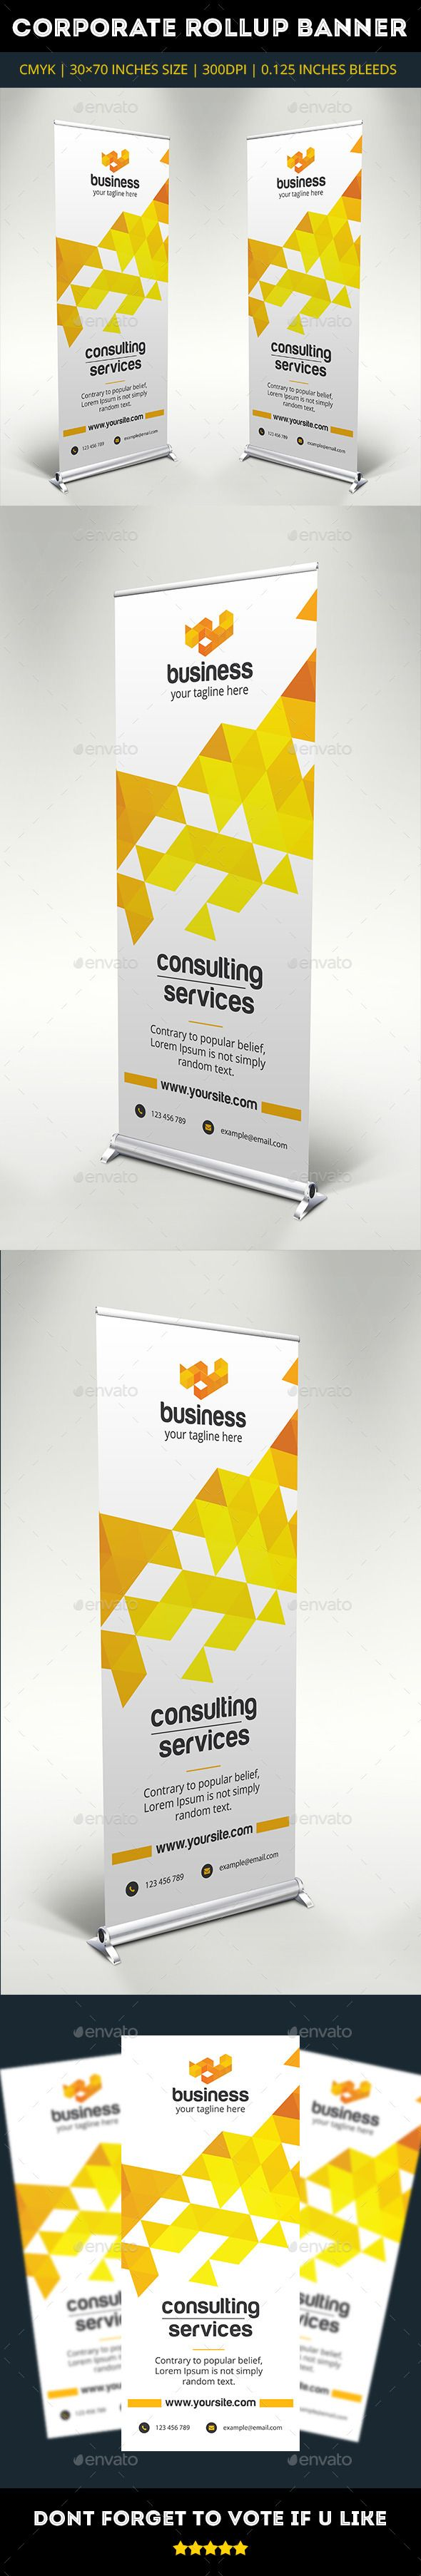 Corporate Rollup Banner — AI Illustrator #real estate #dark • Available here → https://graphicriver.net/item/corporate-rollup-banner/10483108?ref=pxcr